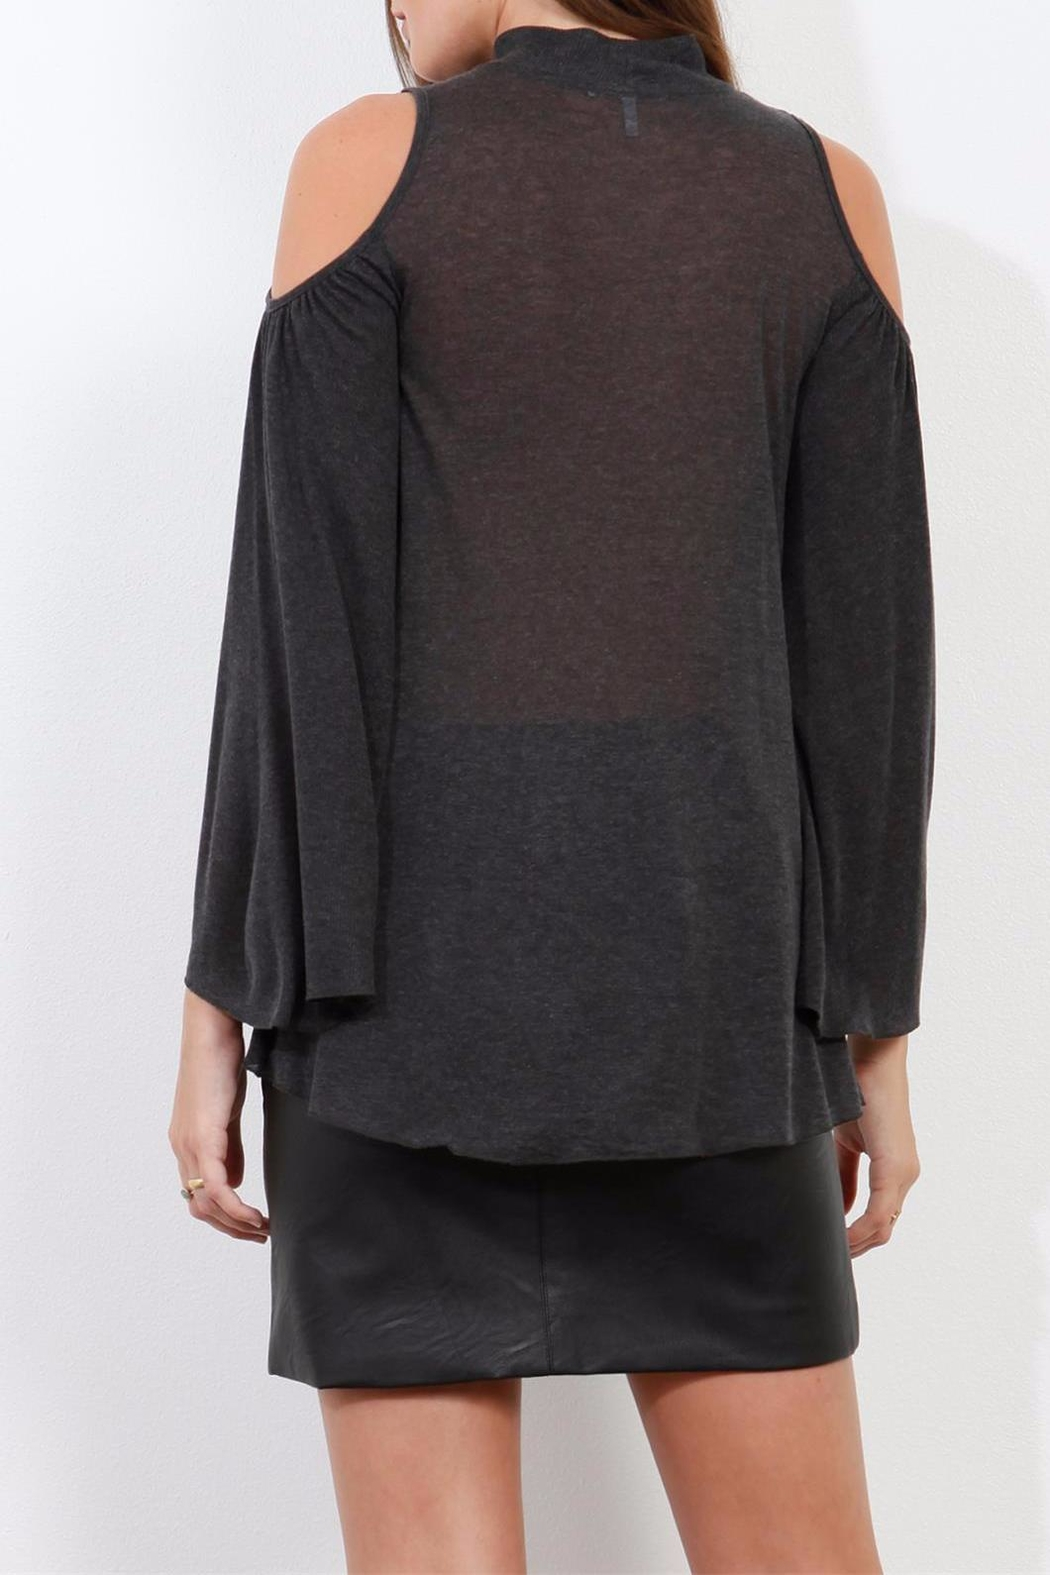 Three Dots Charcoal Cold Shoulder Top - Side Cropped Image